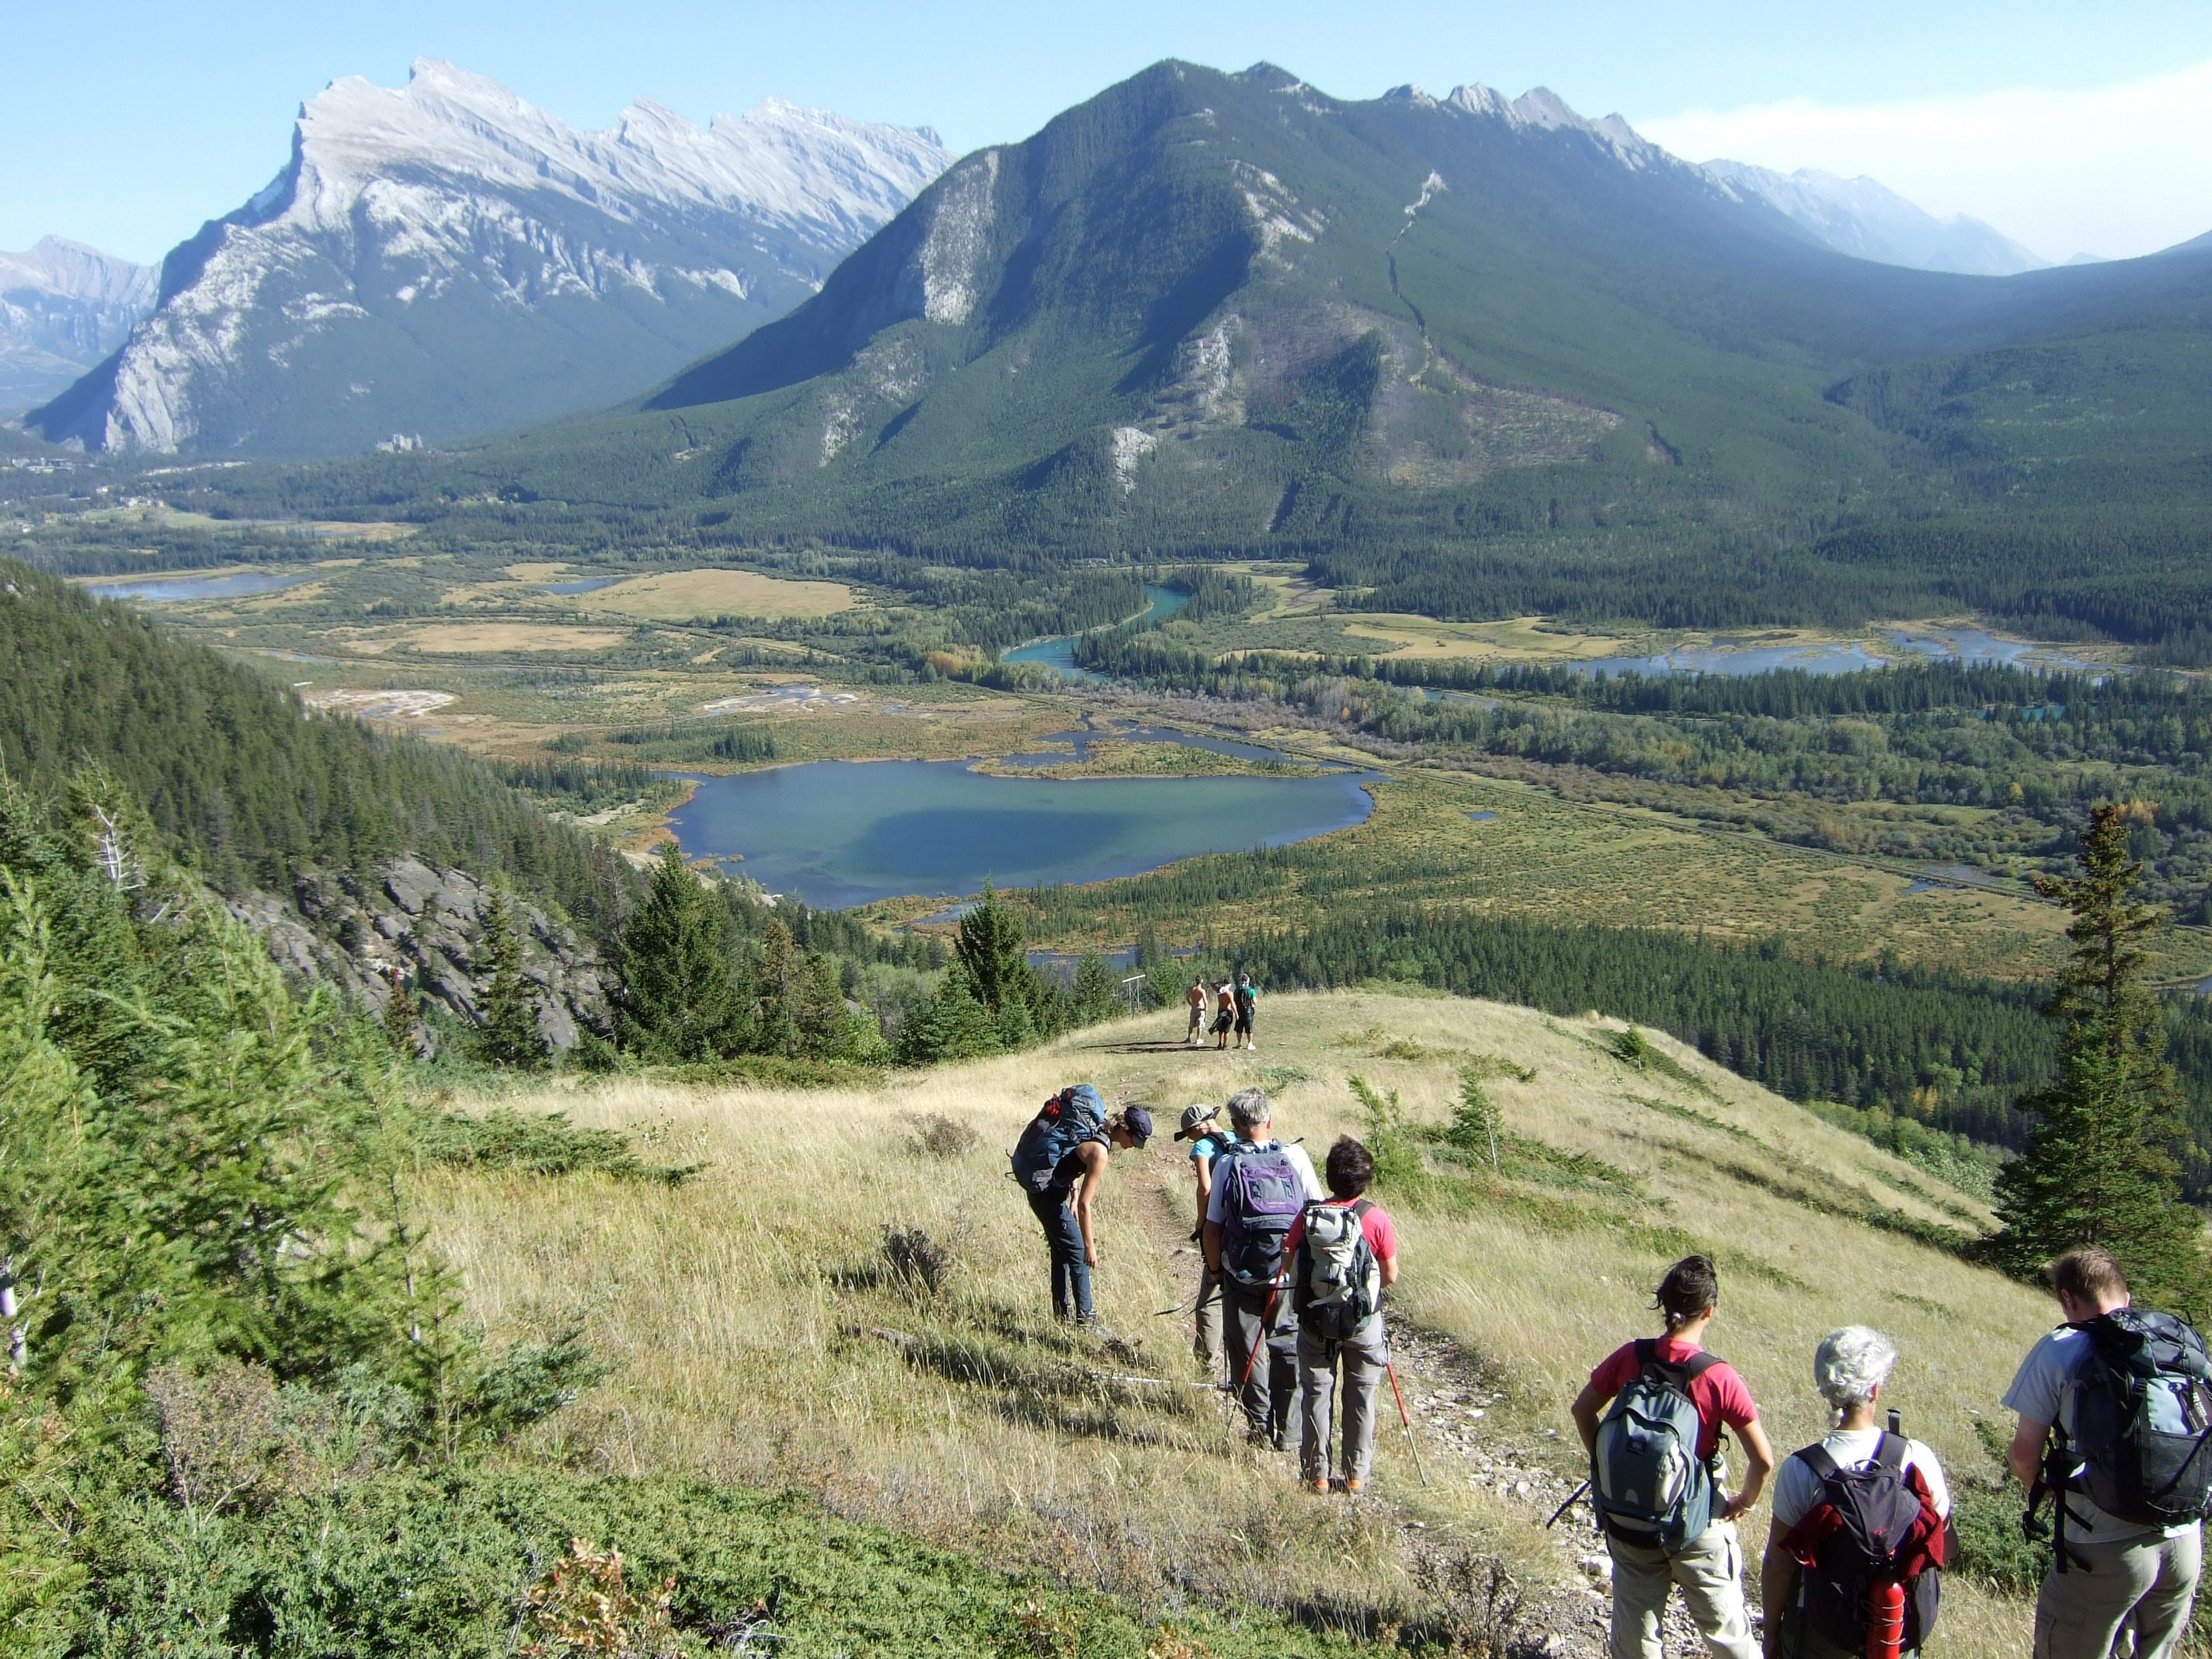 Canadian Rockies Wilderness Walks